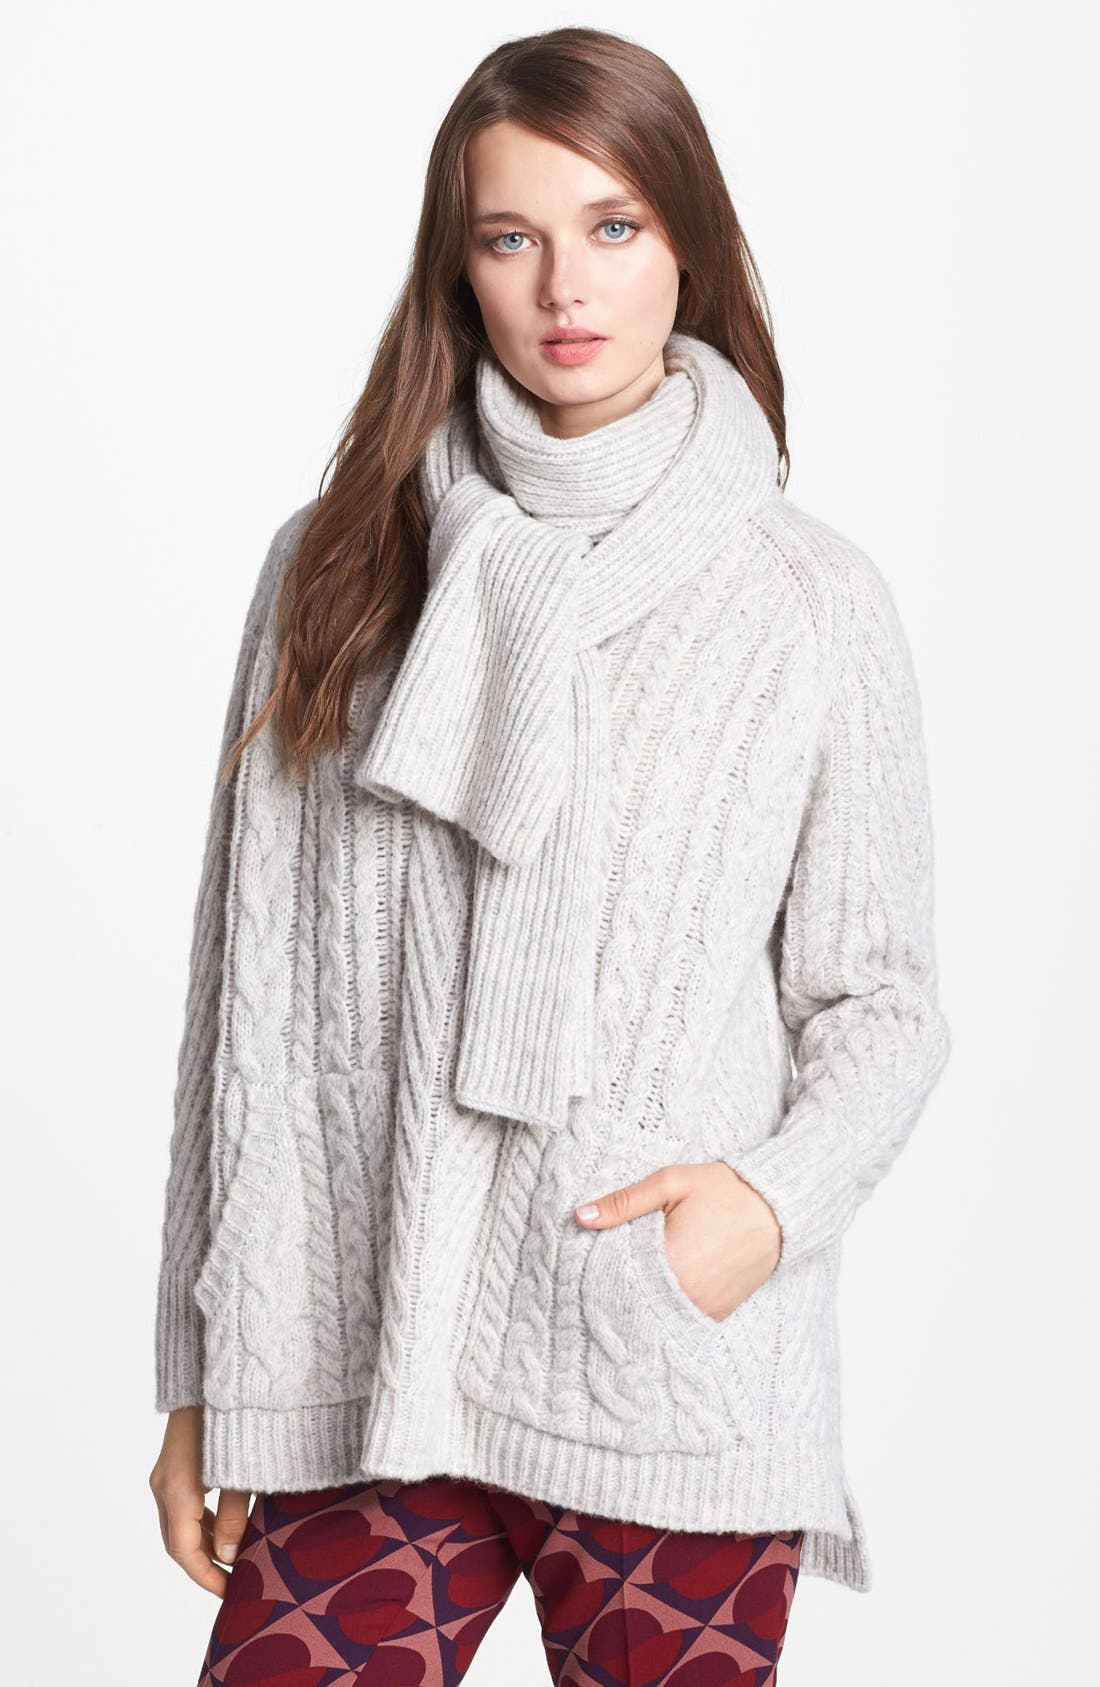 Alternate Image 1 Selected - MARC BY MARC JACOBS 'Connolly' Crew Neck Sweater with Scarf